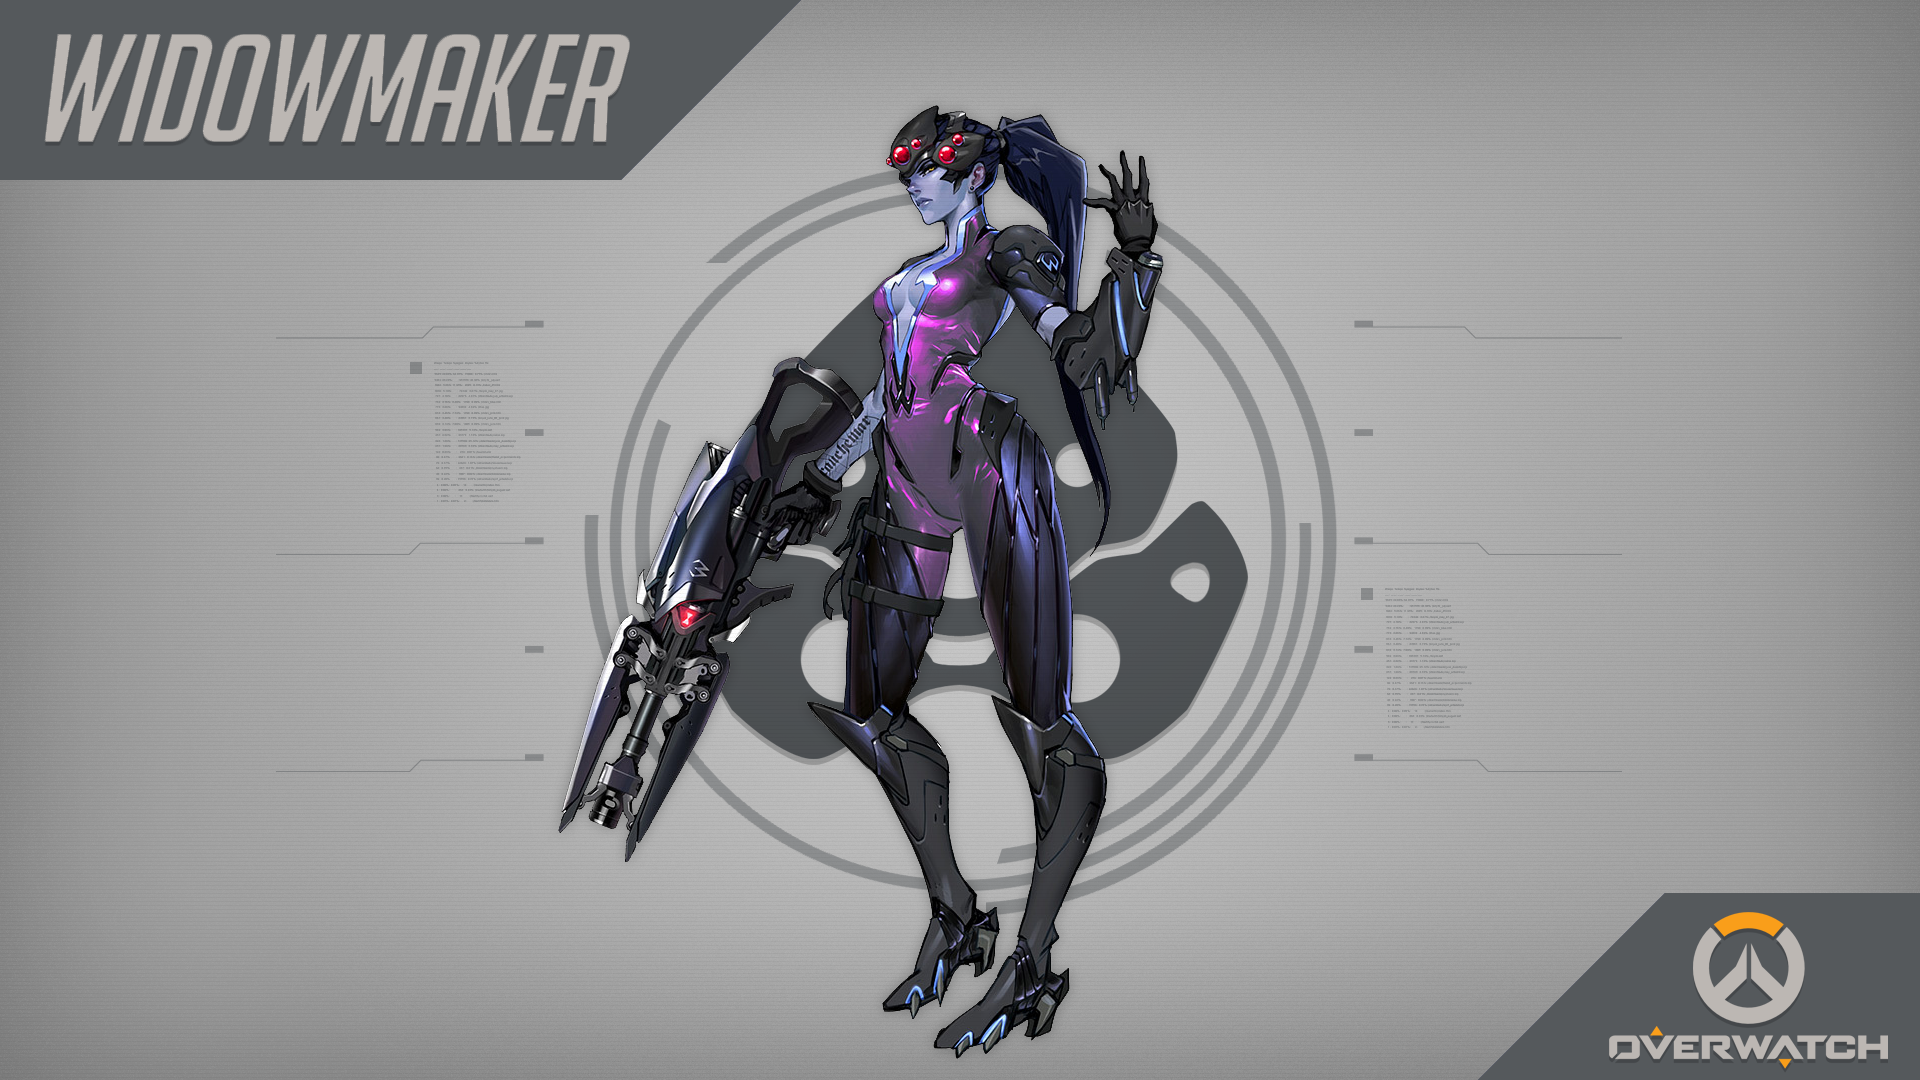 widowmaker overwatch wallpaper 1920x1080 - photo #43